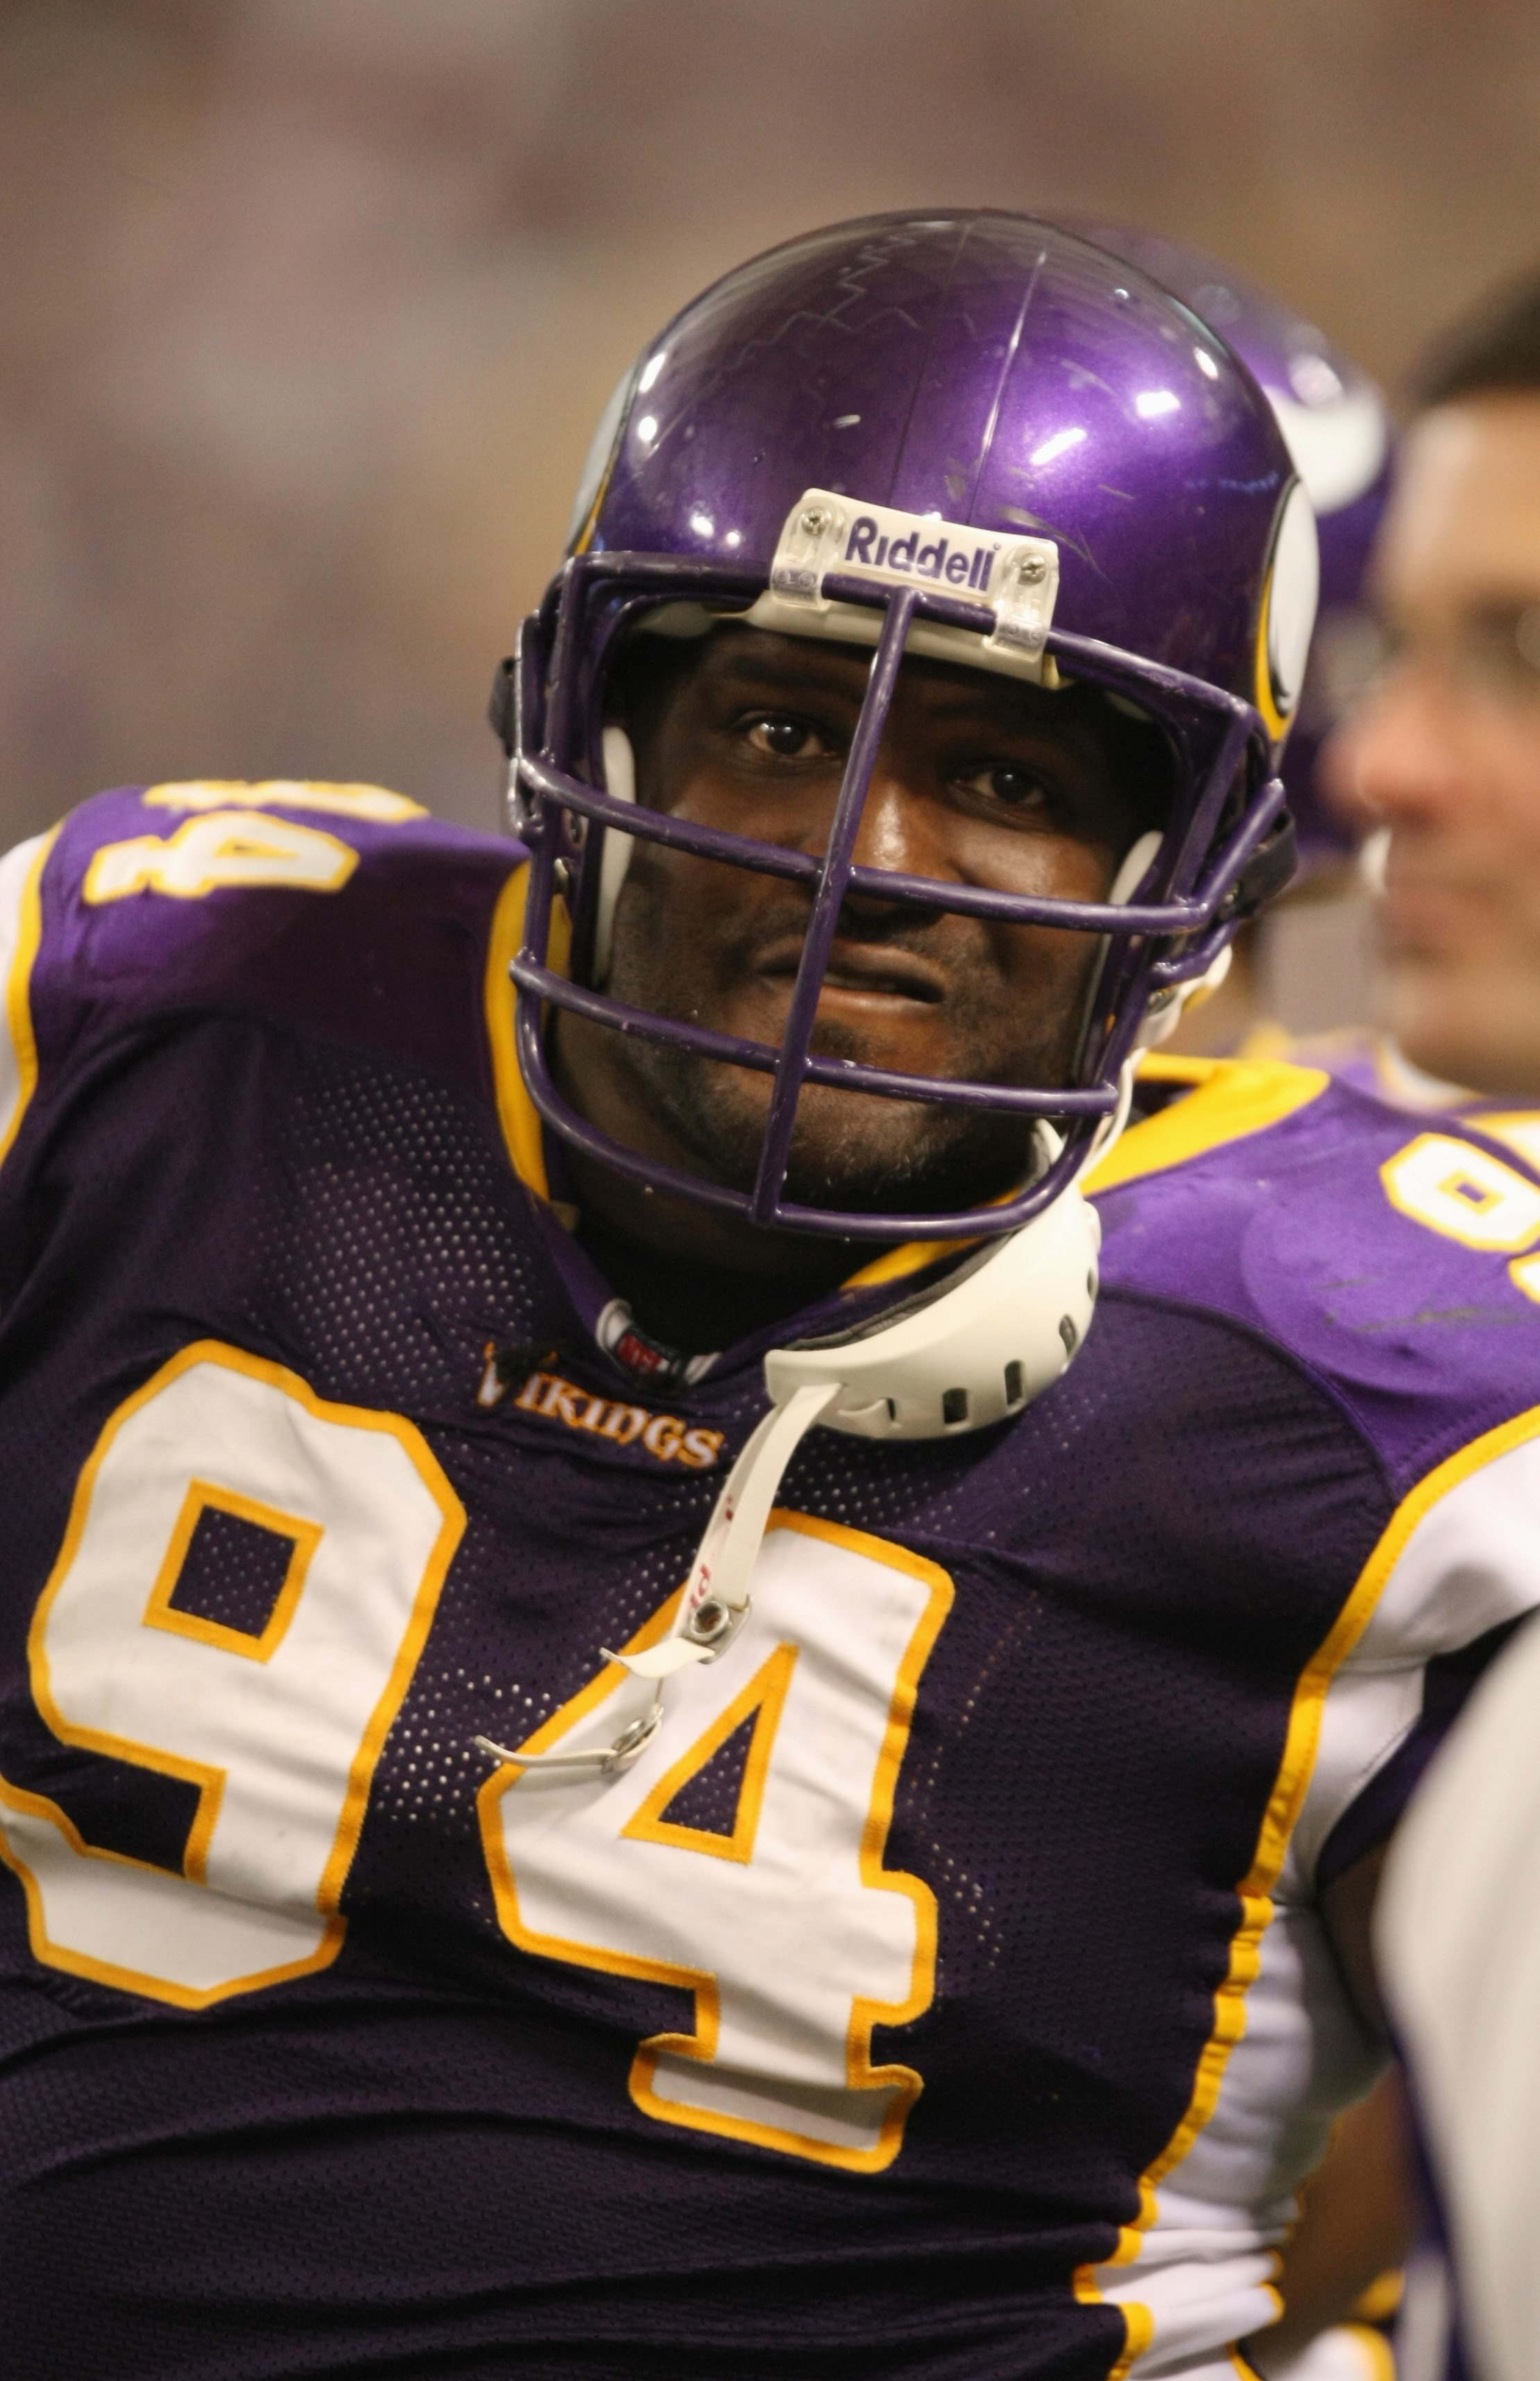 MINNEAPOLIS - SEPTEMBER 21:  Pat Williams #94 of the Minnesota Vikings looks on against the Carolina Panthers during their NFL game at the Hubert H. Humphrey Metrodome on September 21, 2008 in Minneapolis, Minnesota. The Vikings defeated the Panthers 20-1